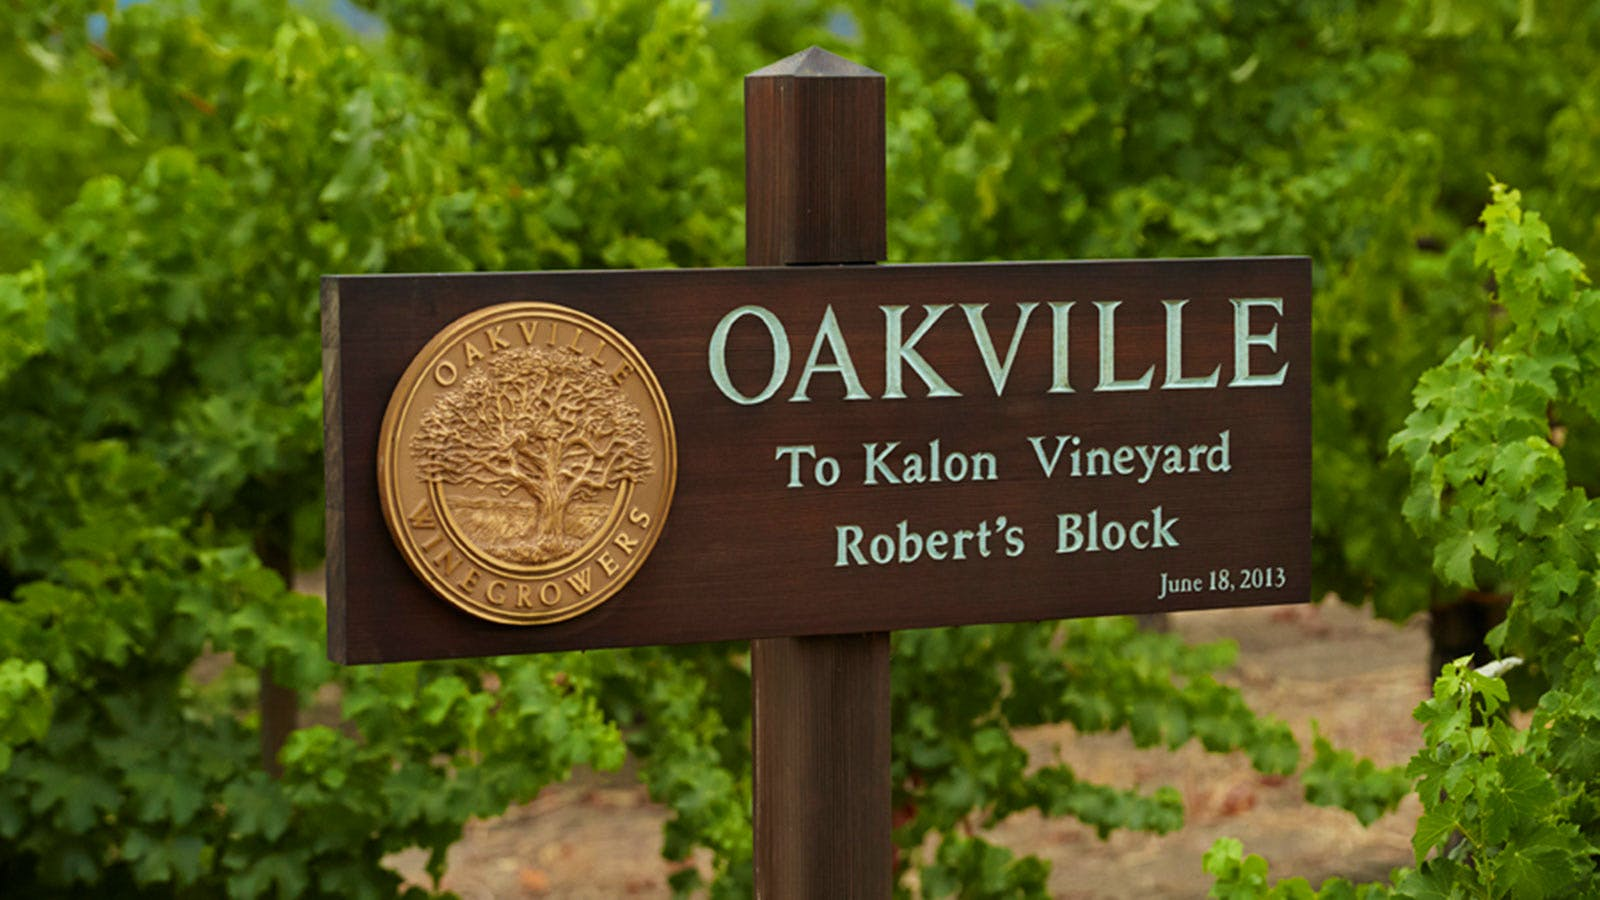 Constellation Brands Prevails in To Kalon Dispute